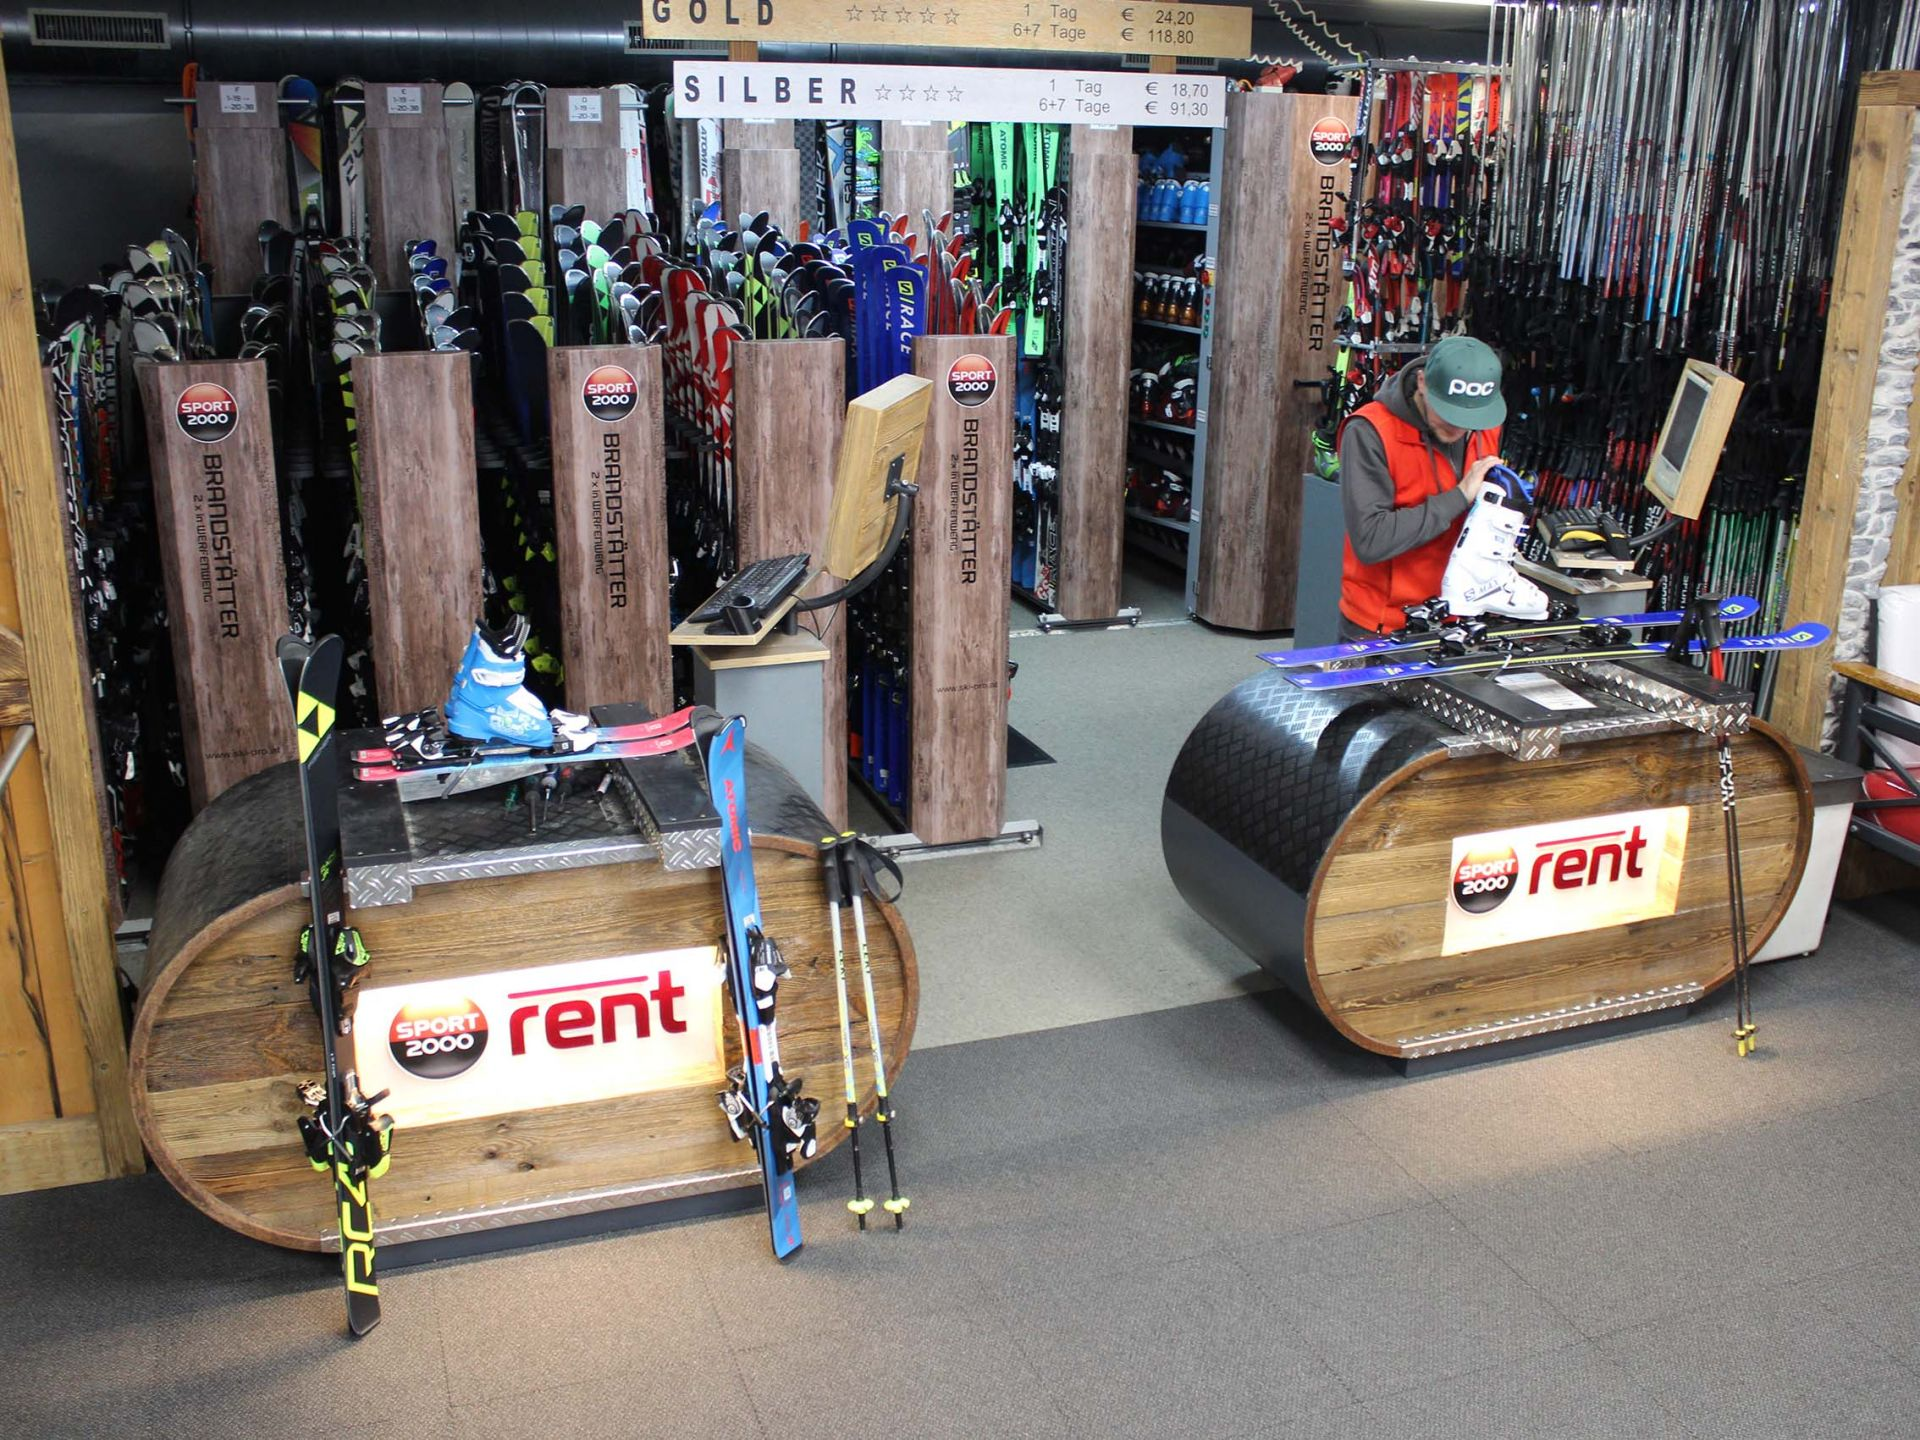 Large selection of current models - over 1,500 pairs of skis available for hire